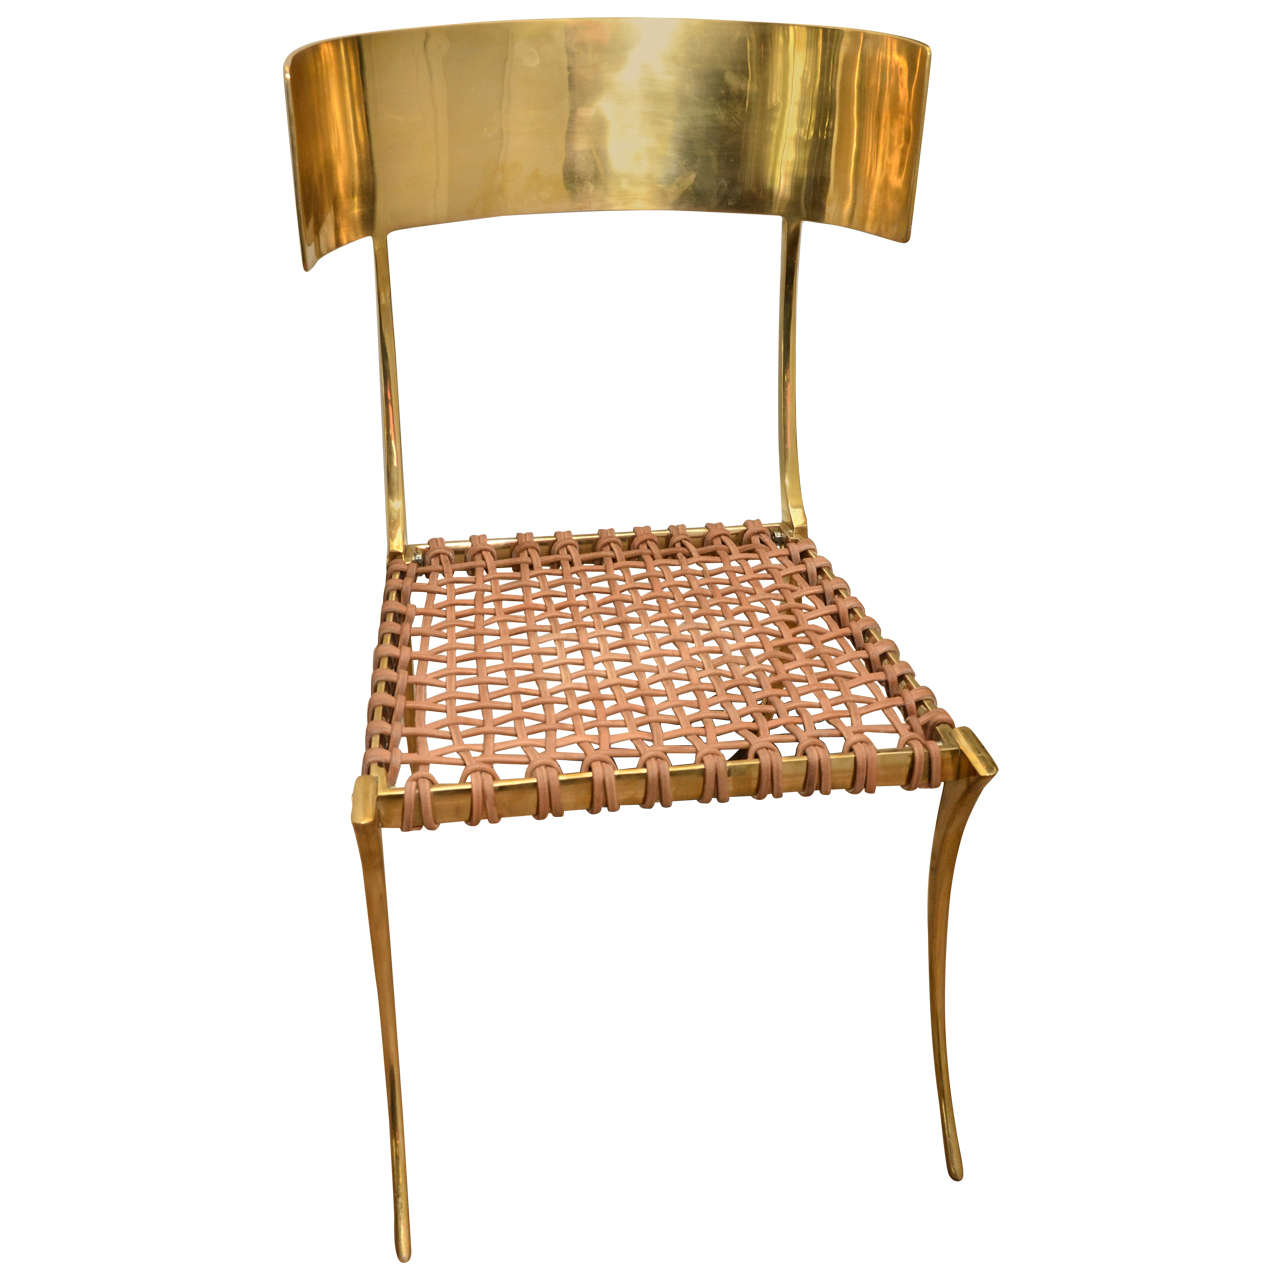 Contemporary Klismos Brass Chair With Leather Straps For Sale At 1stdibs